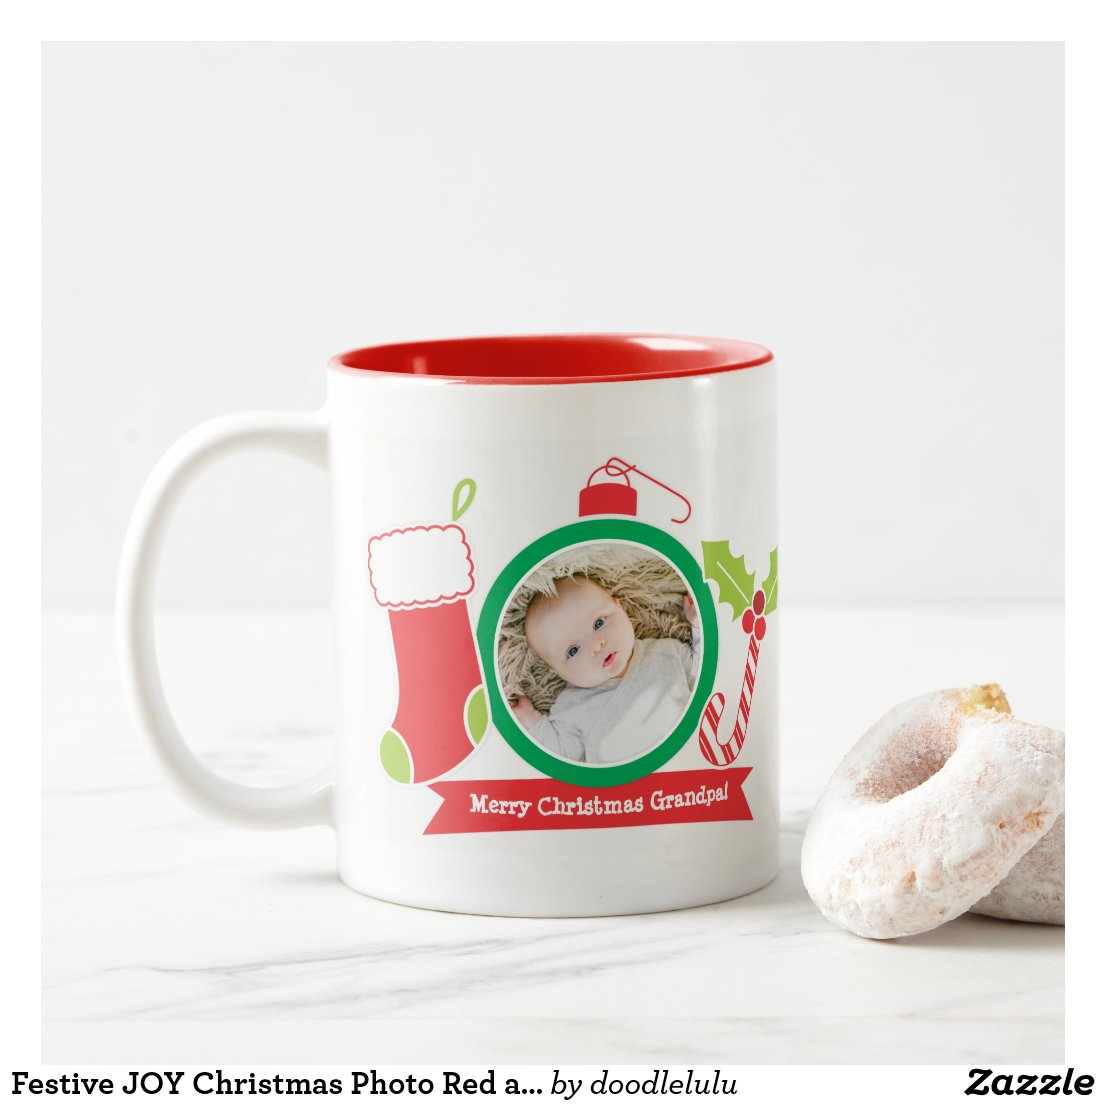 Festive JOY Christmas Photo Red and Green Two-Tone Coffee Mug